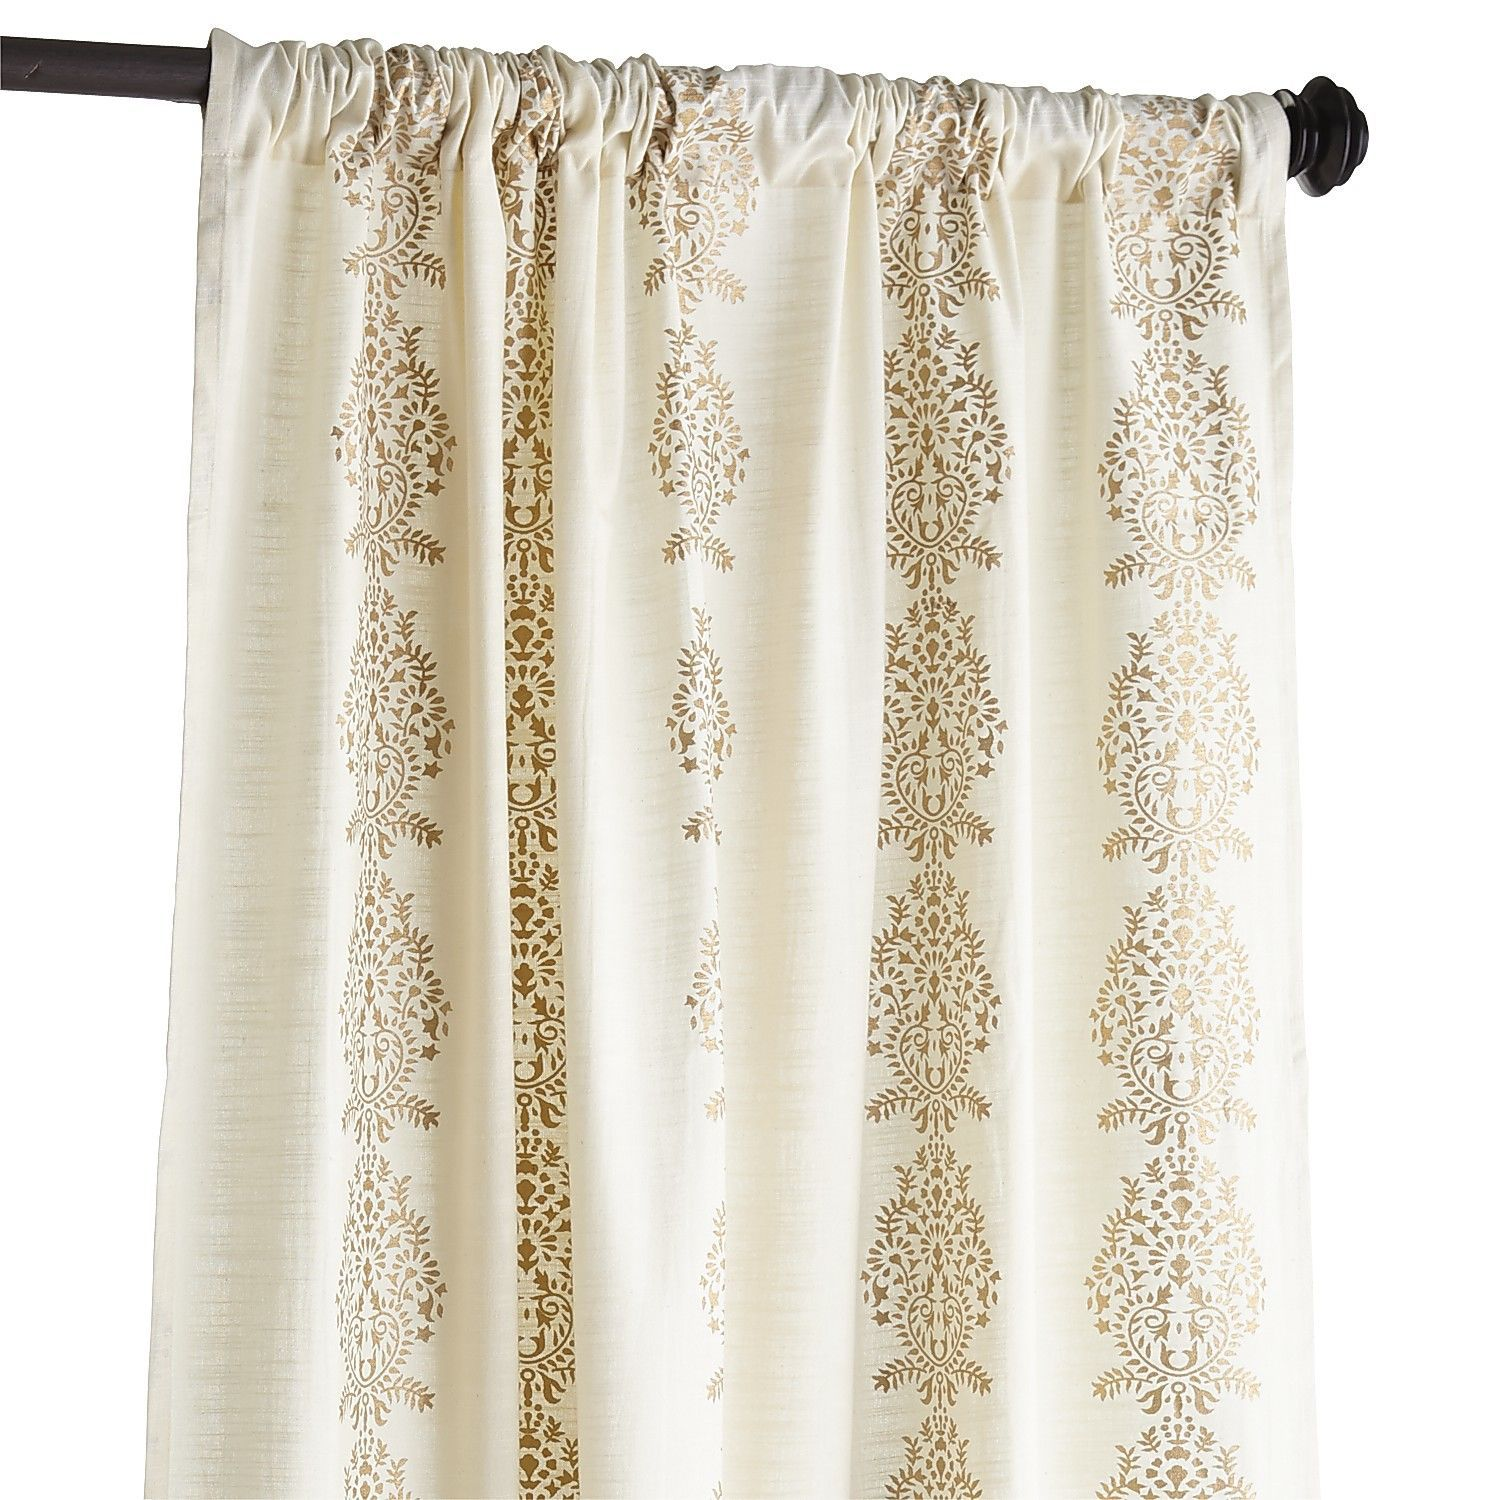 Make This Look On Cheaper Solid Curtains Damask Stripe